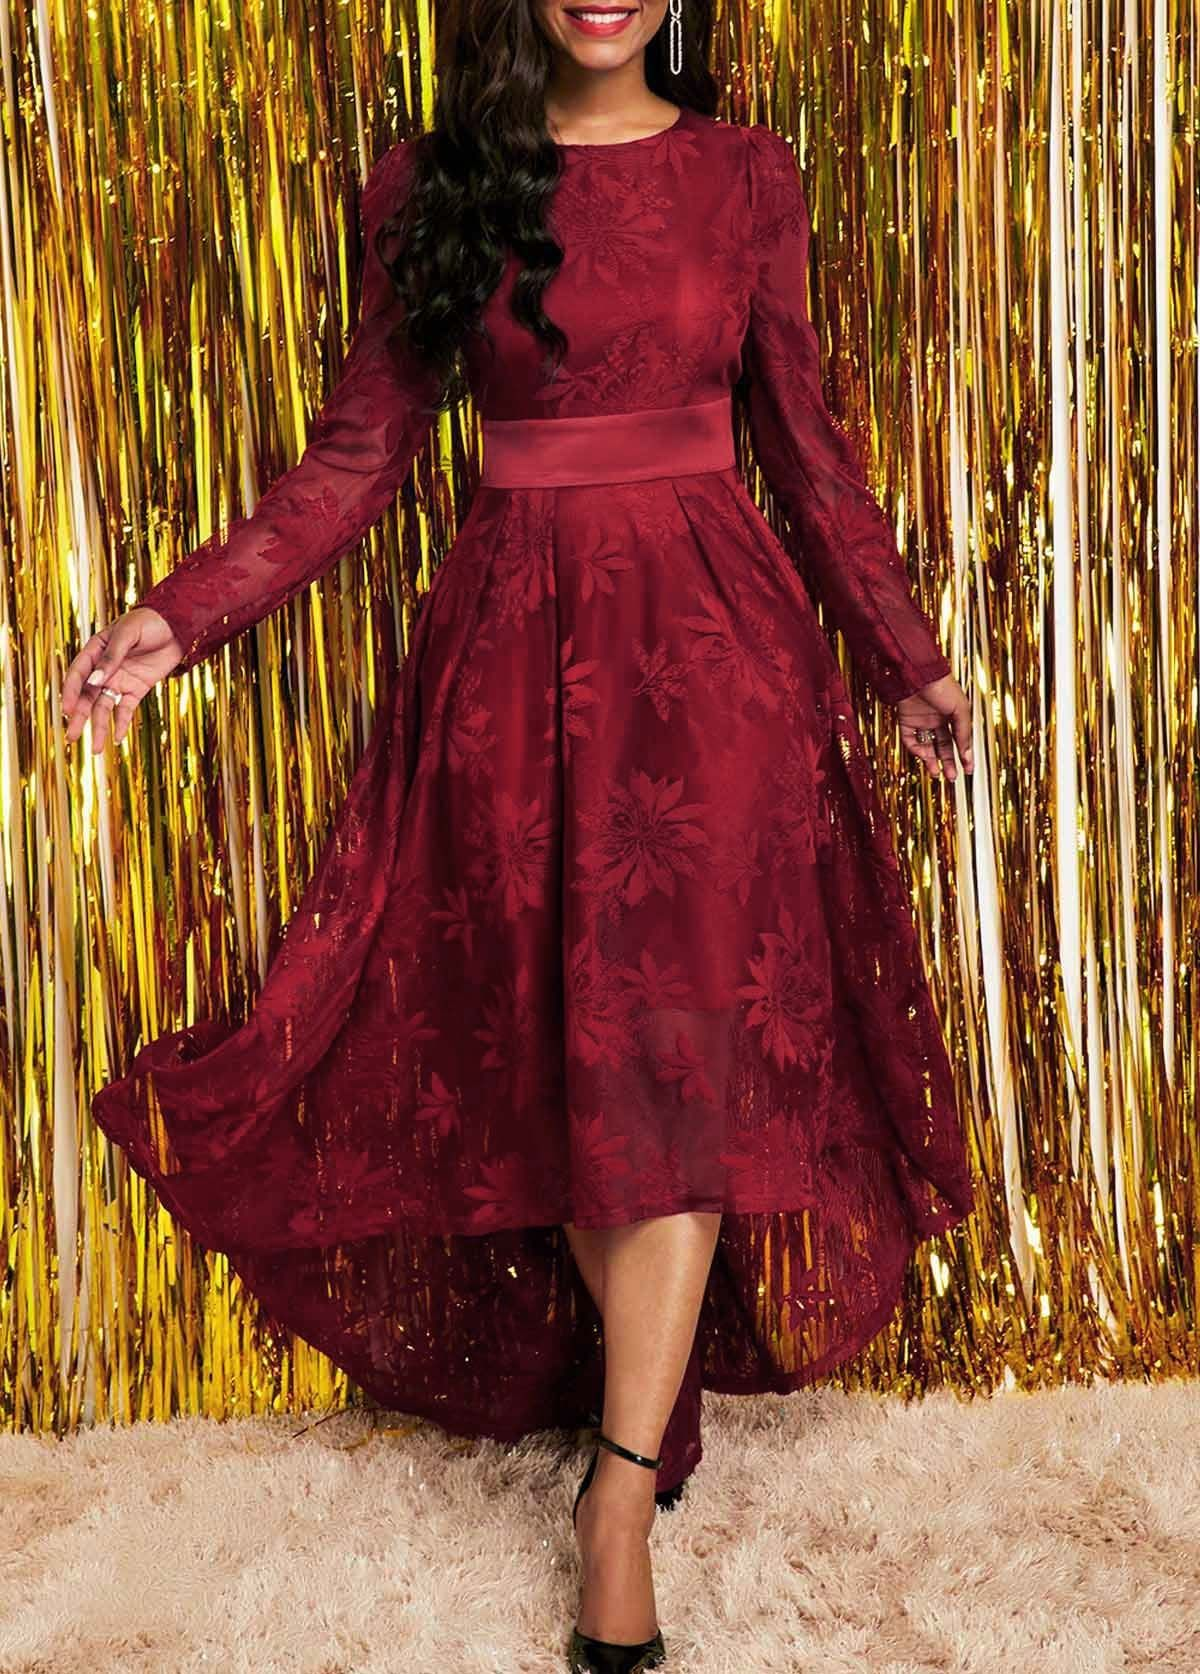 Rotita Com Usd 33 6 In 2021 Red Lace Long Sleeve Dress Long Sleeve High Low Dress Lace Dress [ 1674 x 1200 Pixel ]